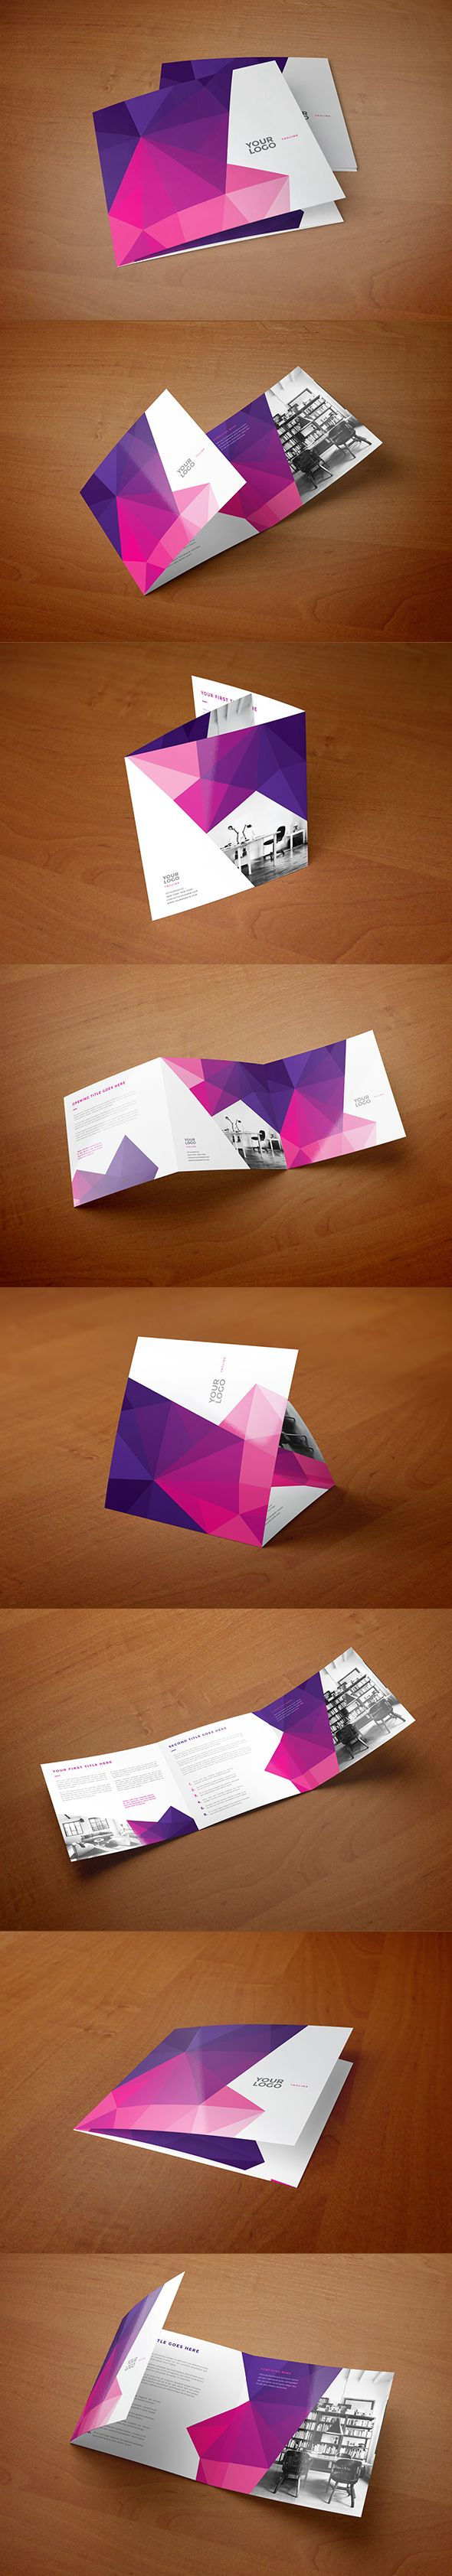 Square Clean Pink Pattern Trifold. Download here: http://graphicriver.net/item/square-clean-pink-pattern-trifold/12471343?ref=abradesign